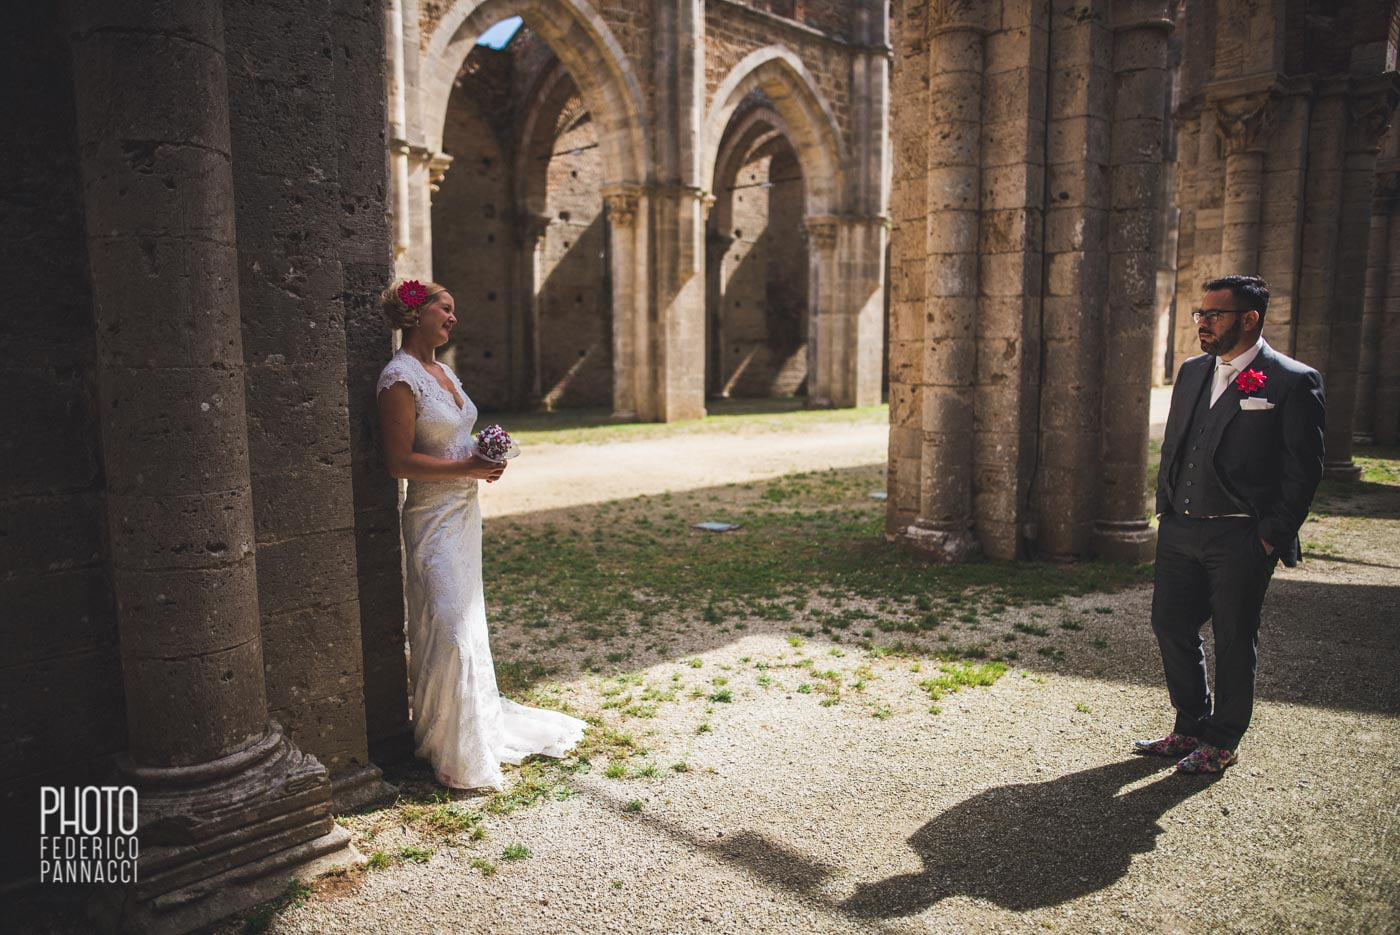 048-DestinationWedding-Sangalgano